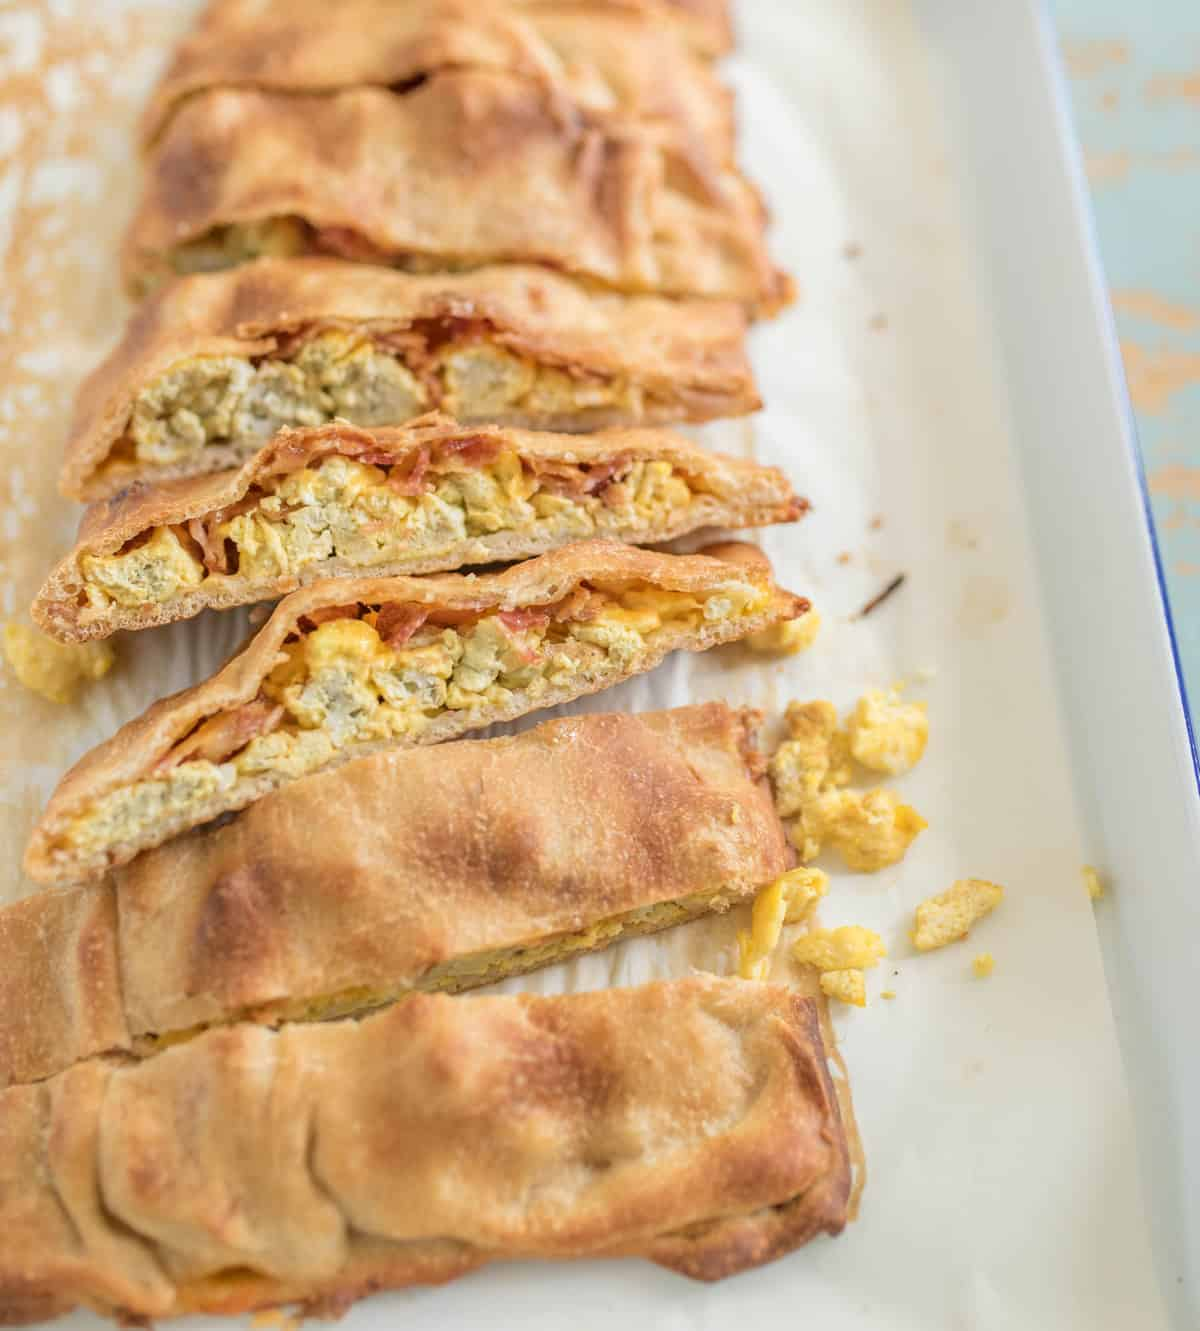 Quick and easy breakfast pizza sticks made with pizza dough, eggs, bacon, and cheese, all baked into easy to eat pizza sticks.